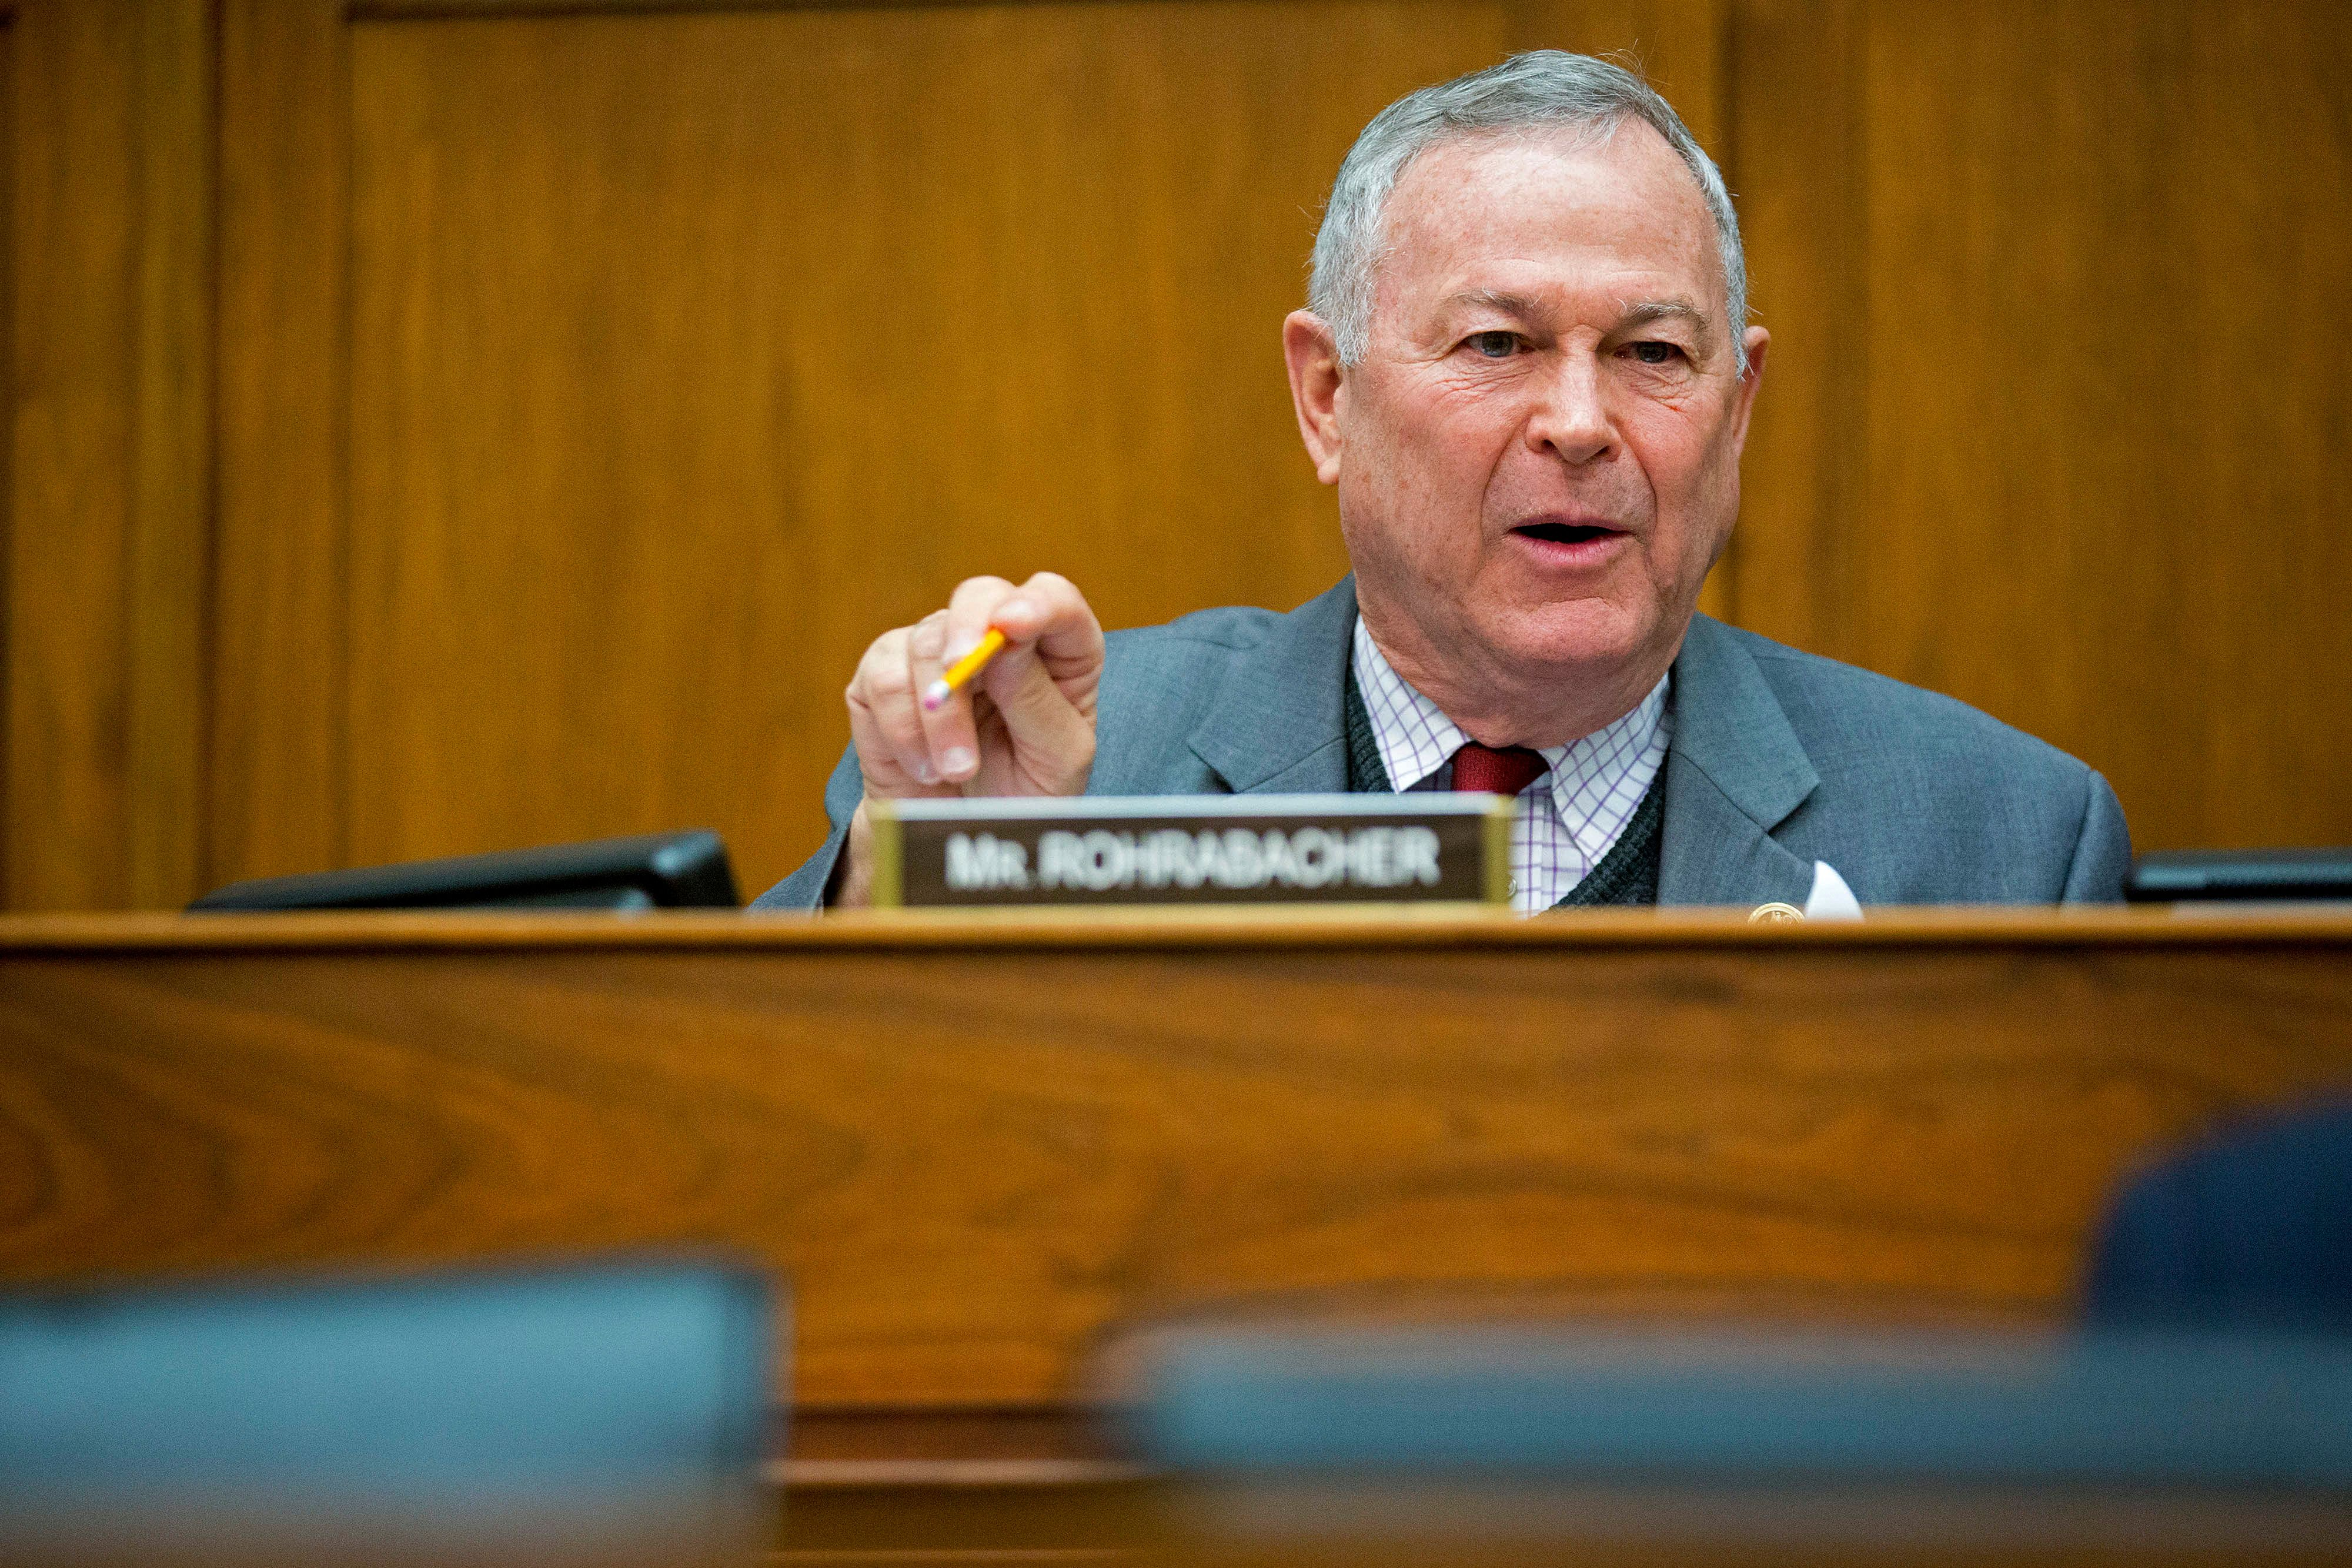 Pro-Russia GOP Congressman Features Prominently In Trump Aide's Plea Document